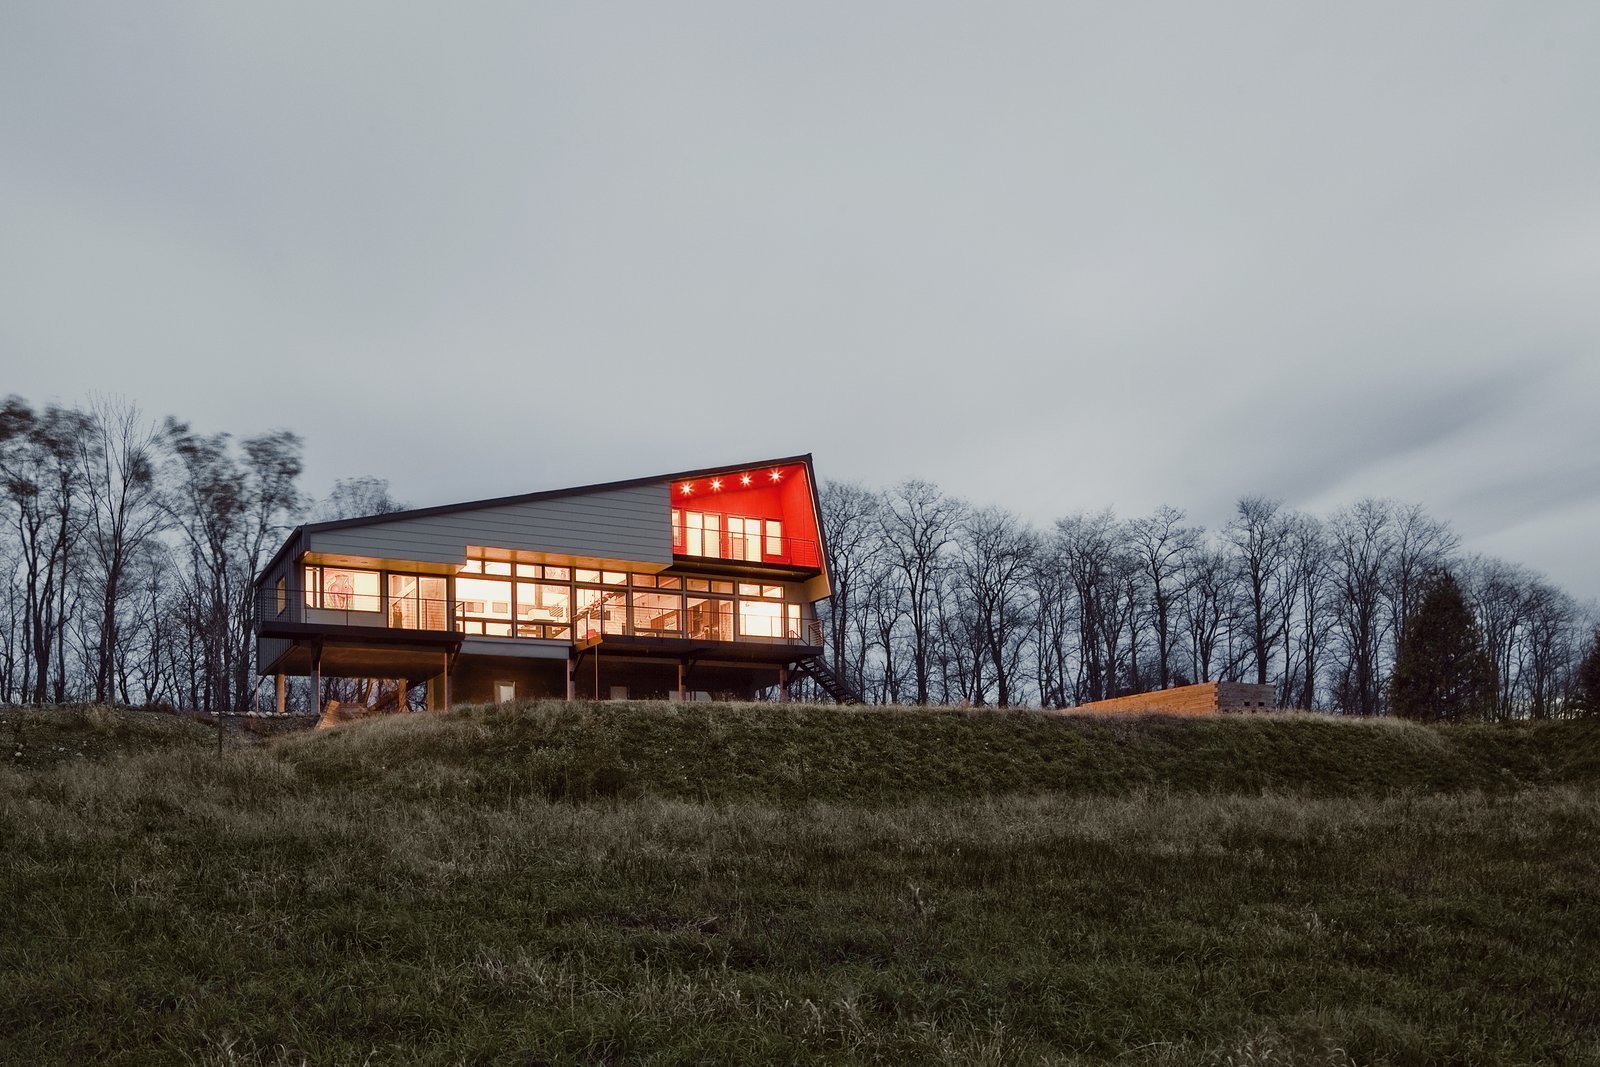 Articles about top 10 places study architecture on Dwell.com